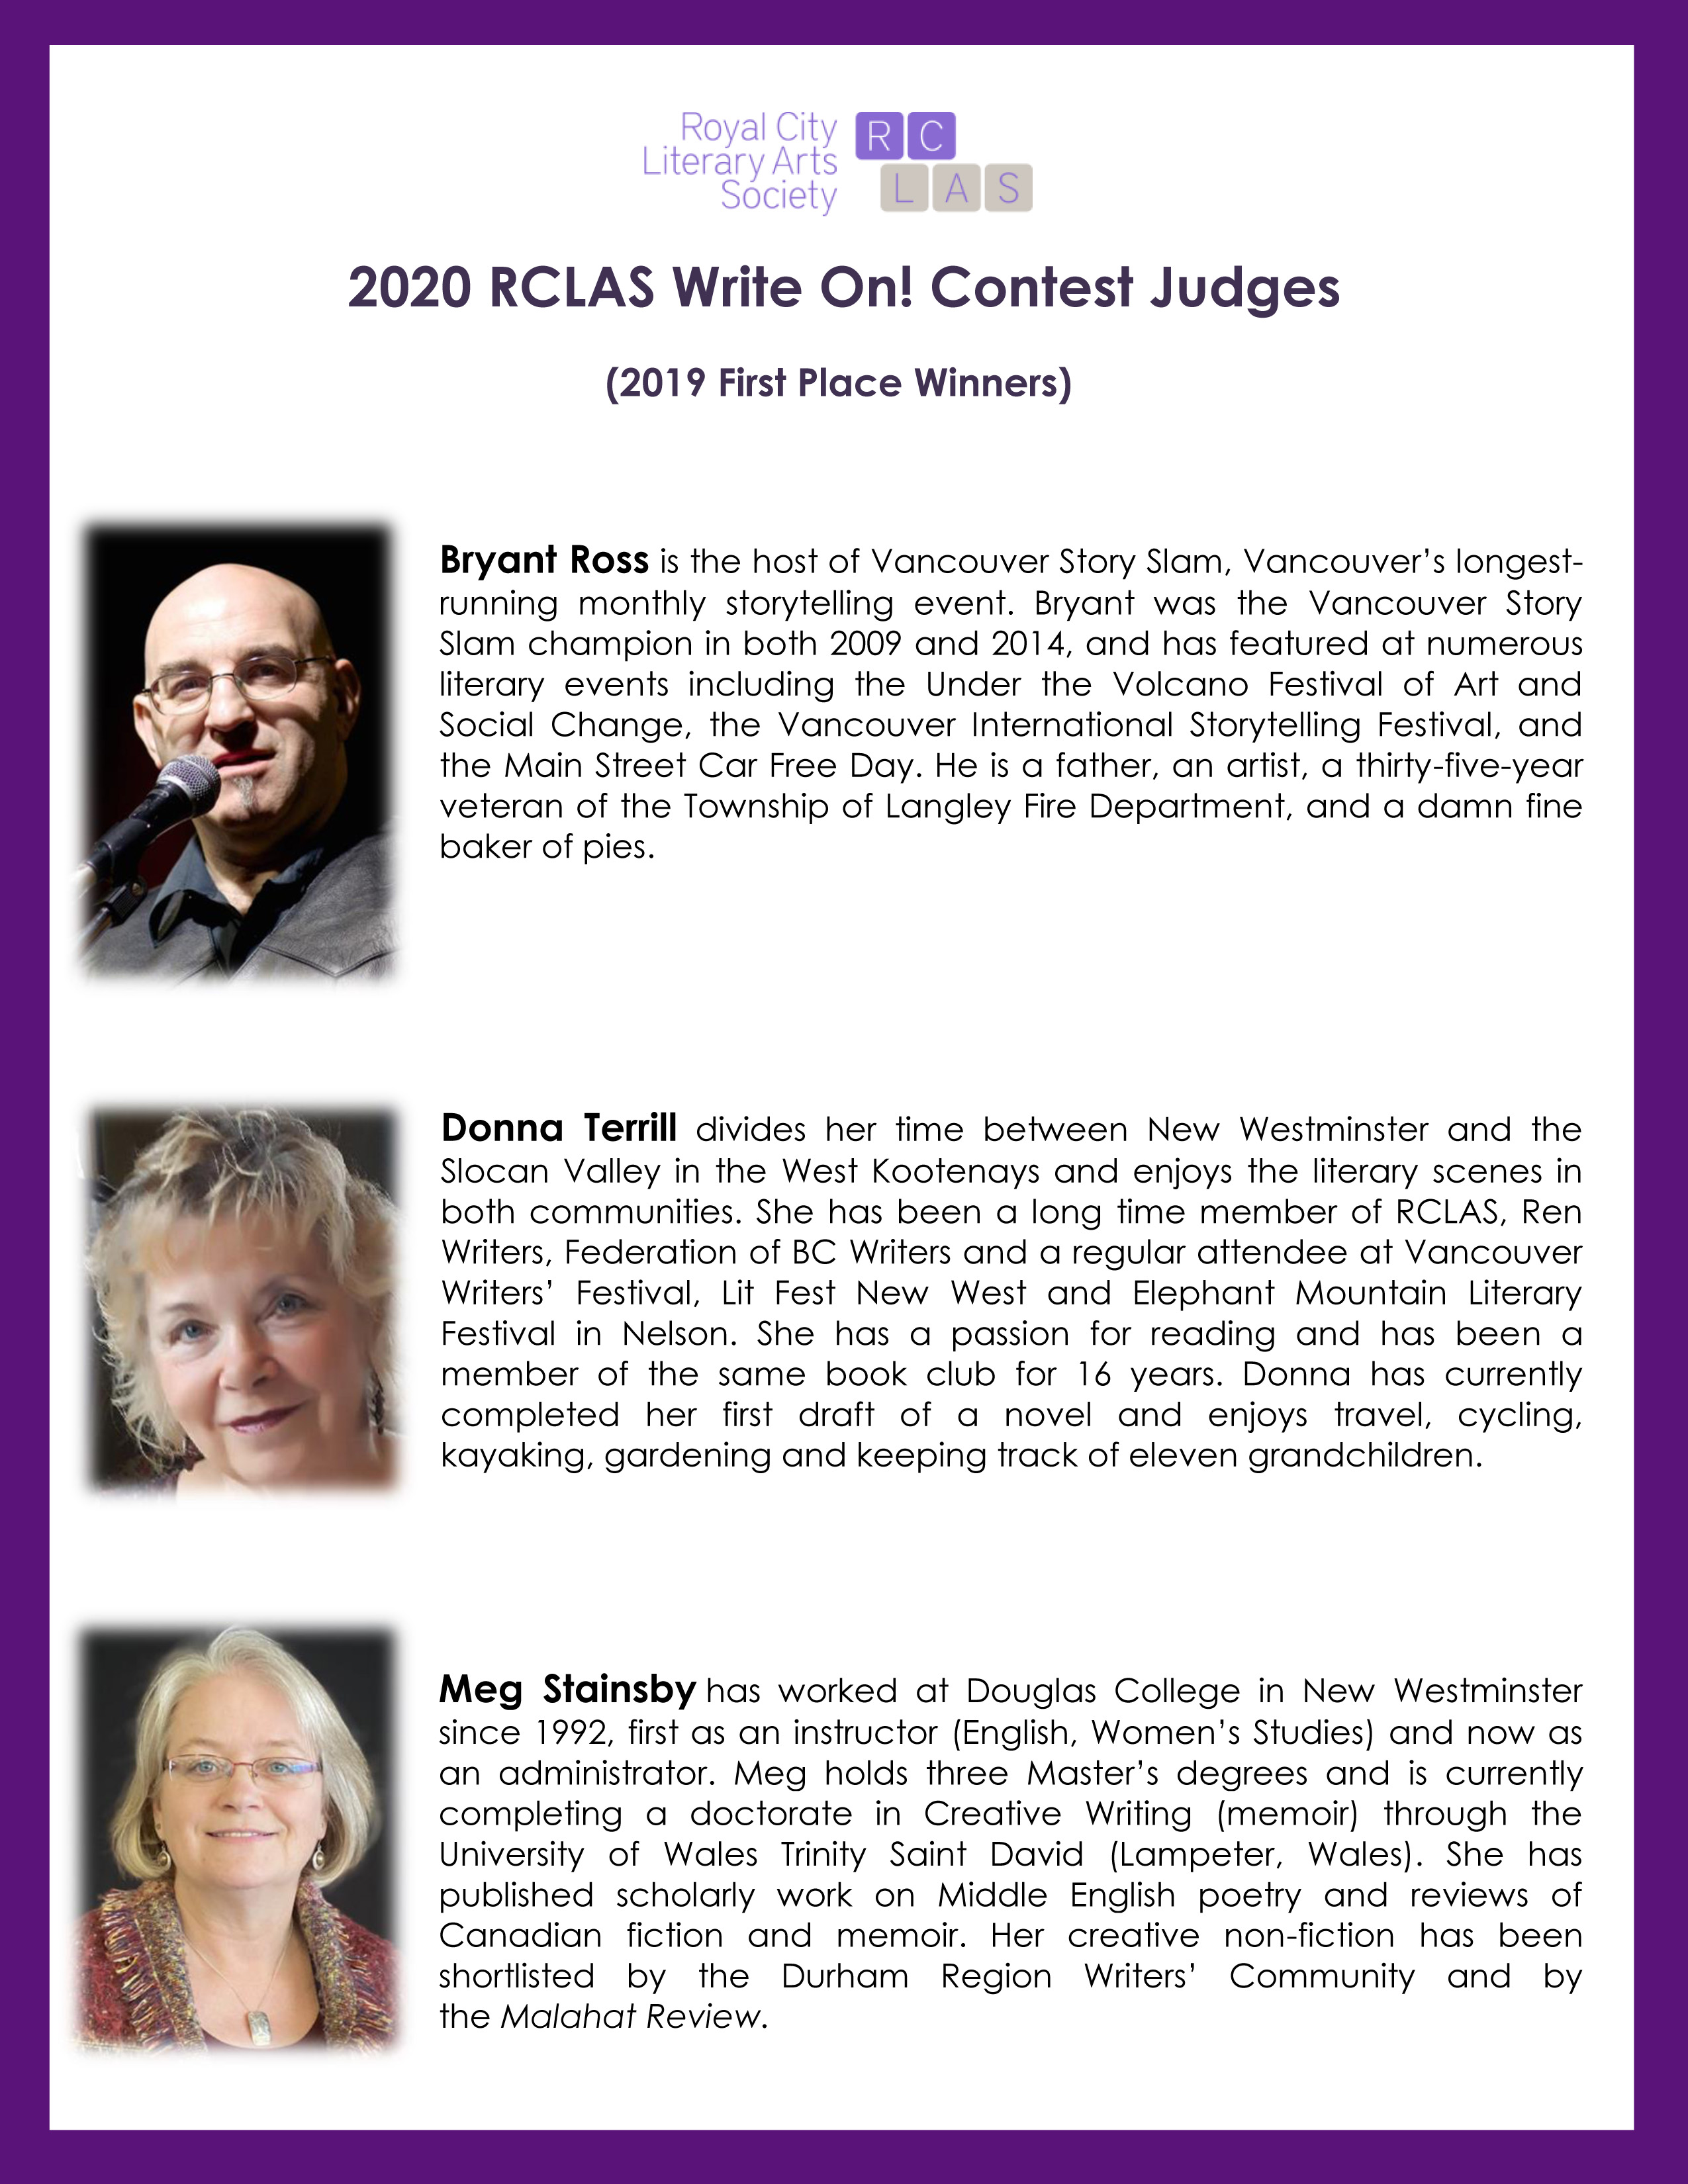 2020 Judges with bios final